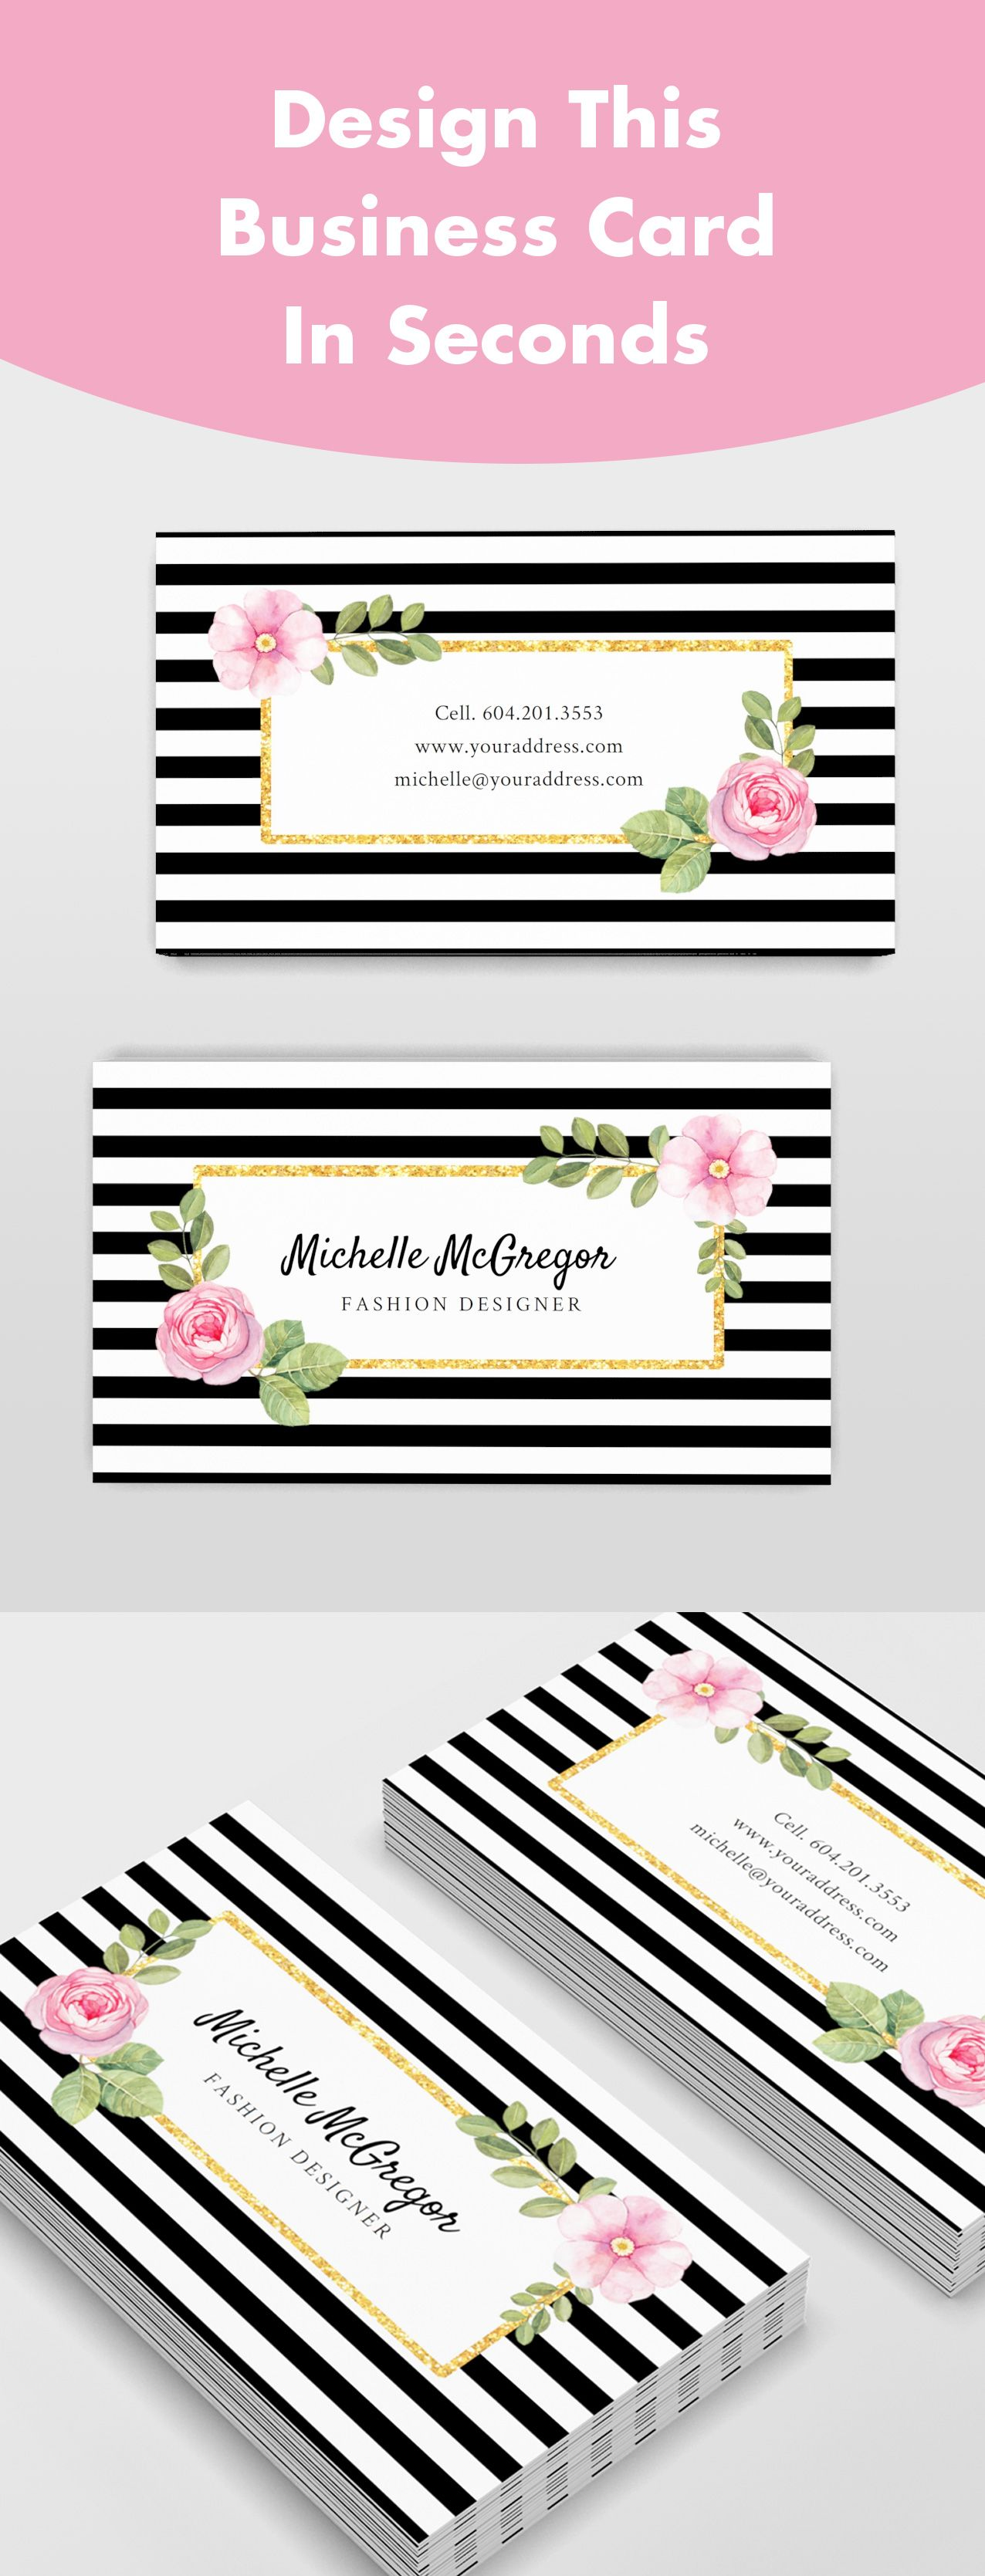 Design This Beautiful Business Card In Seconds It S Easy